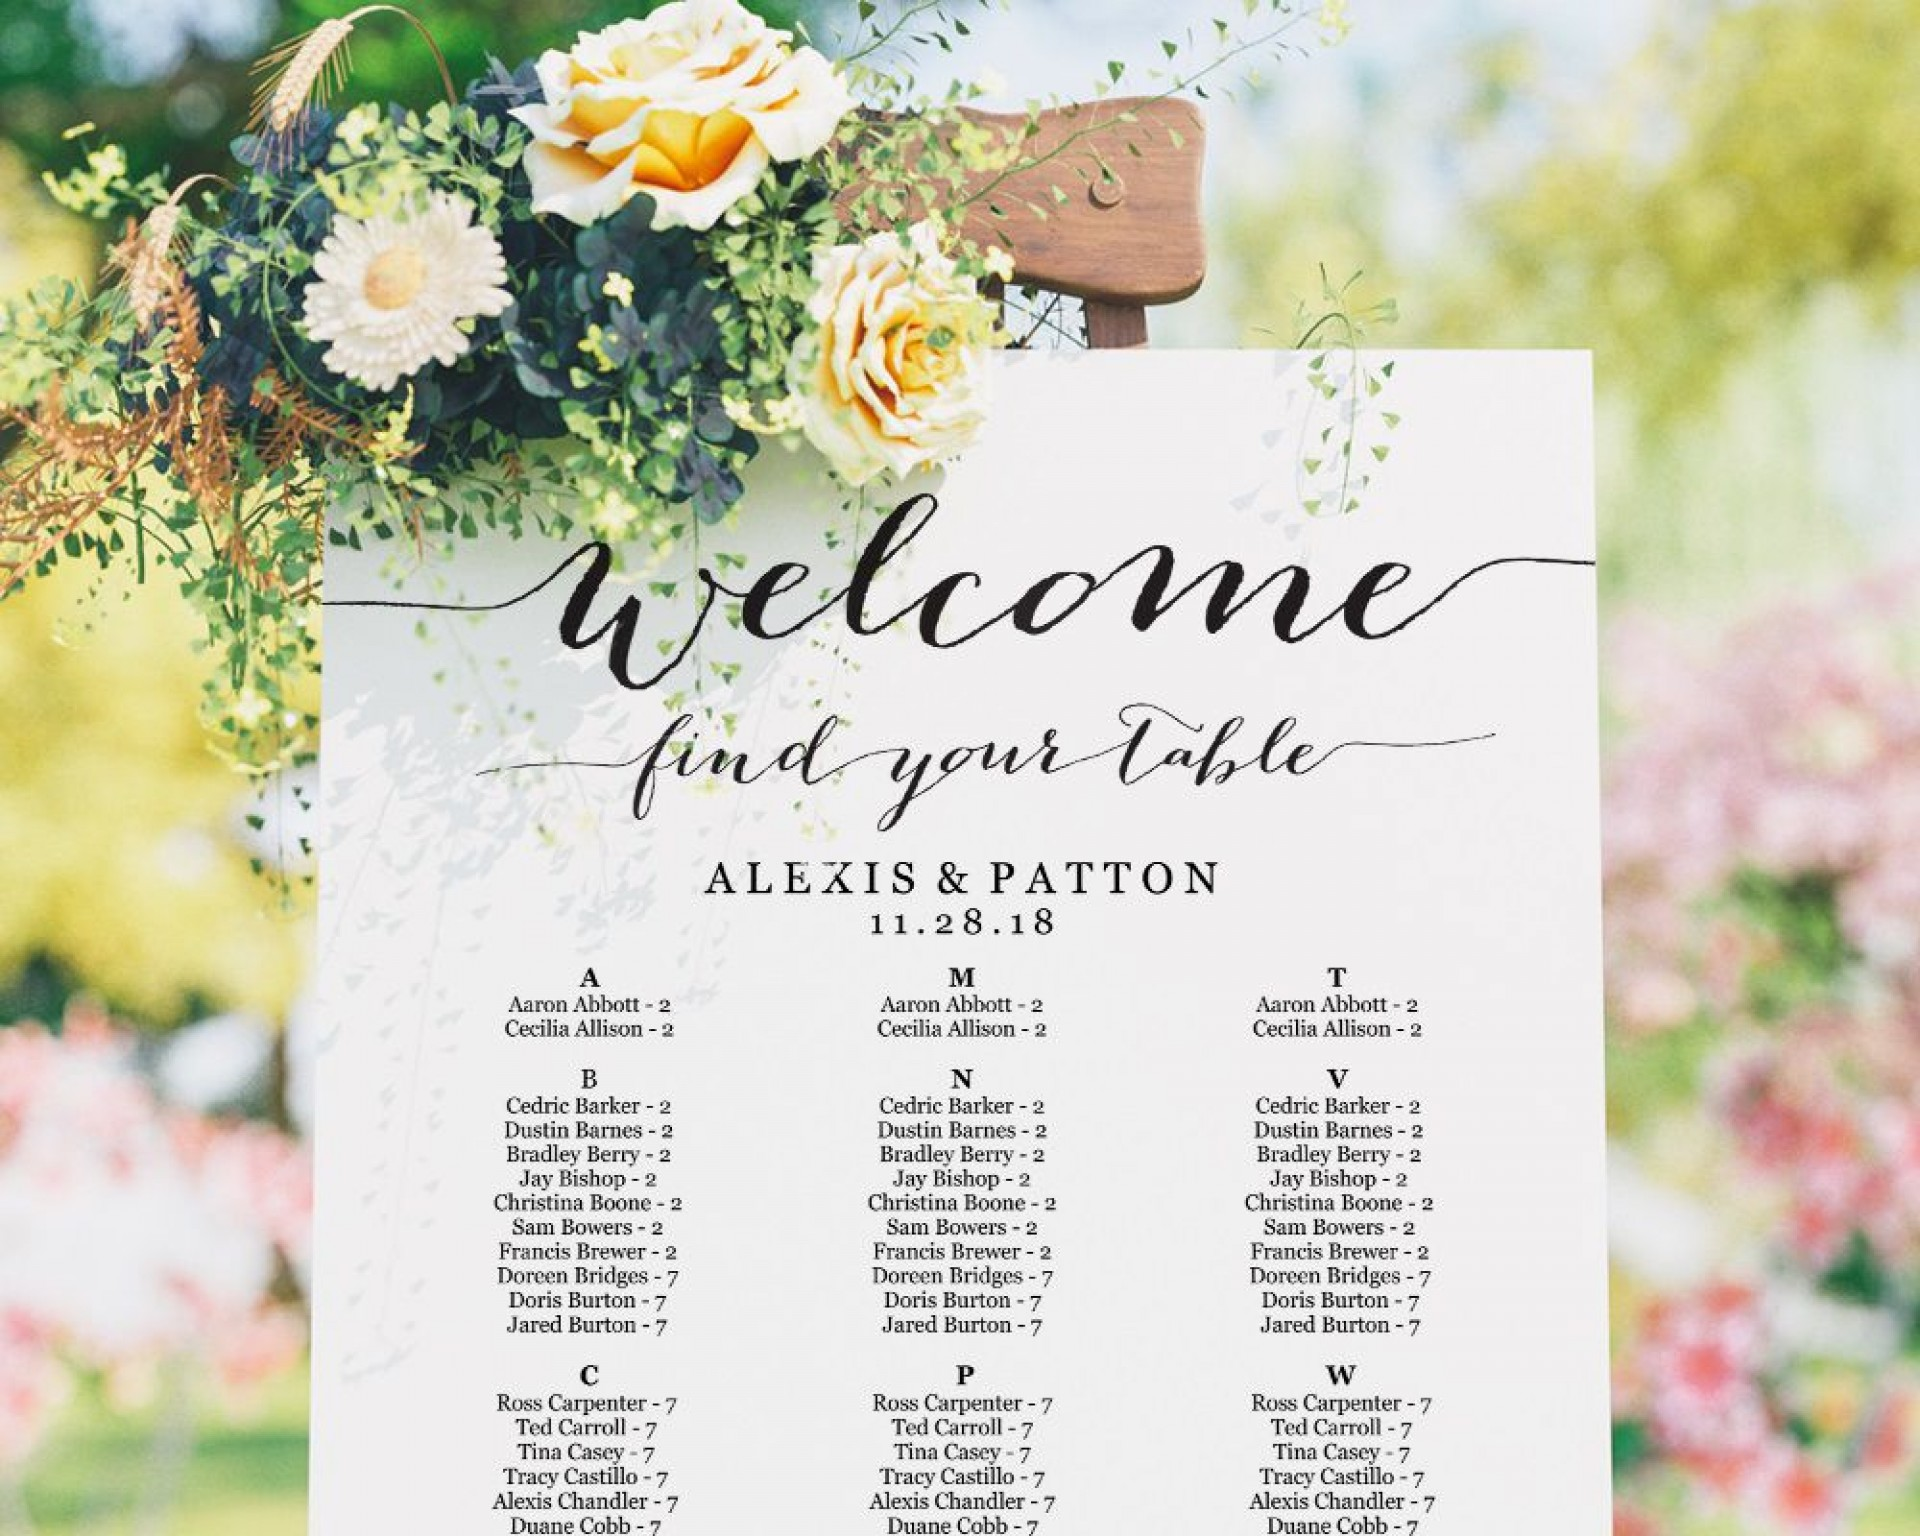 002 Top Seating Chart Wedding Template Sample  Alphabetical Word Table Plan1920